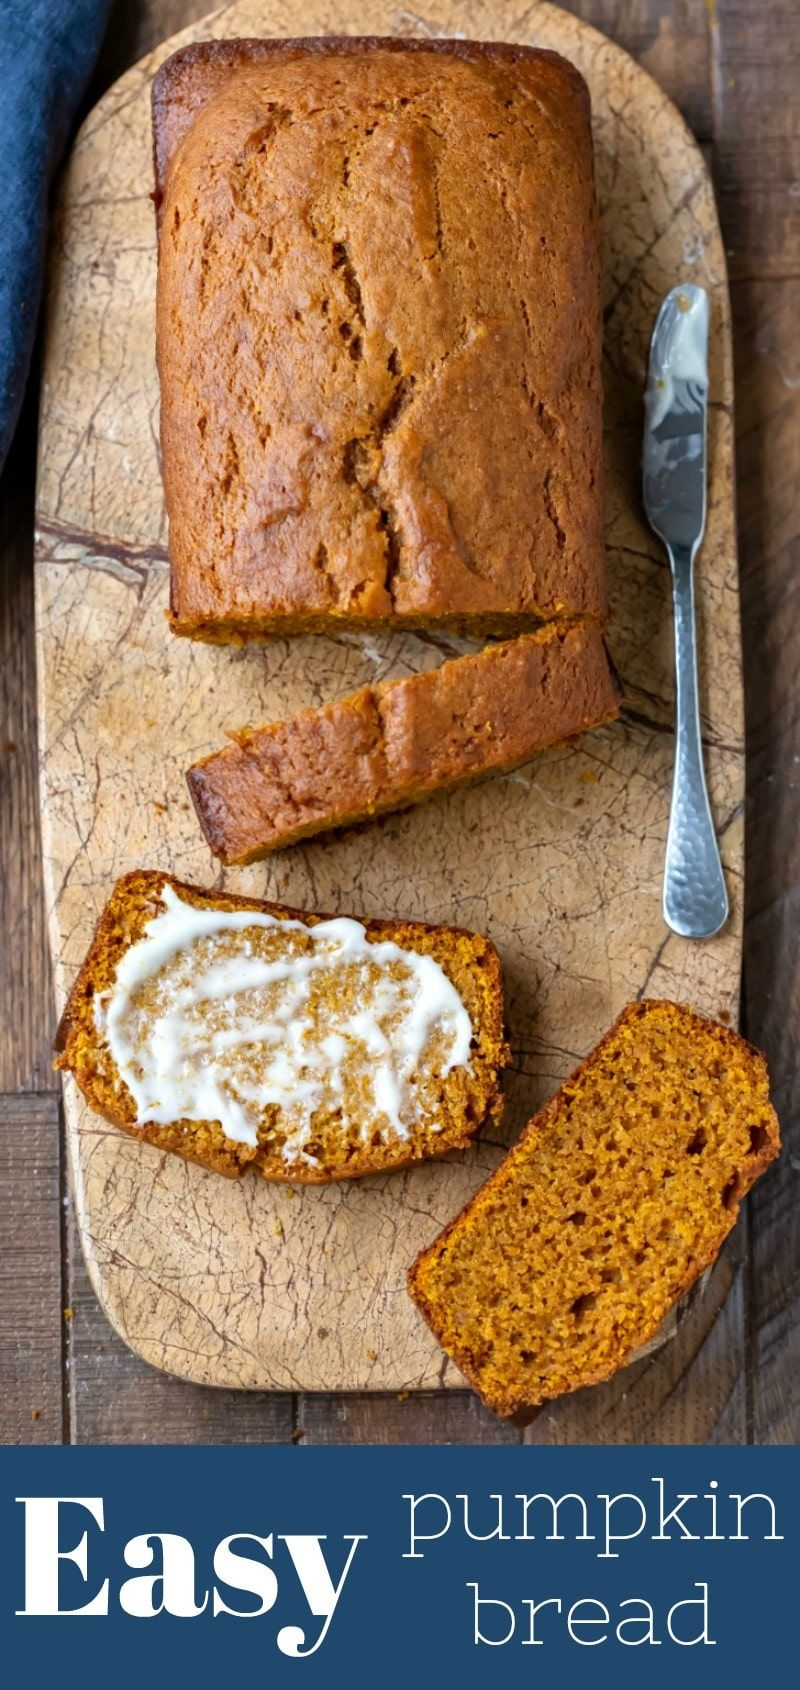 Easy Pumpkin Bread Easy pumpkin bread recipe that makes two loaves of moist homemade pumpkin spice bread.